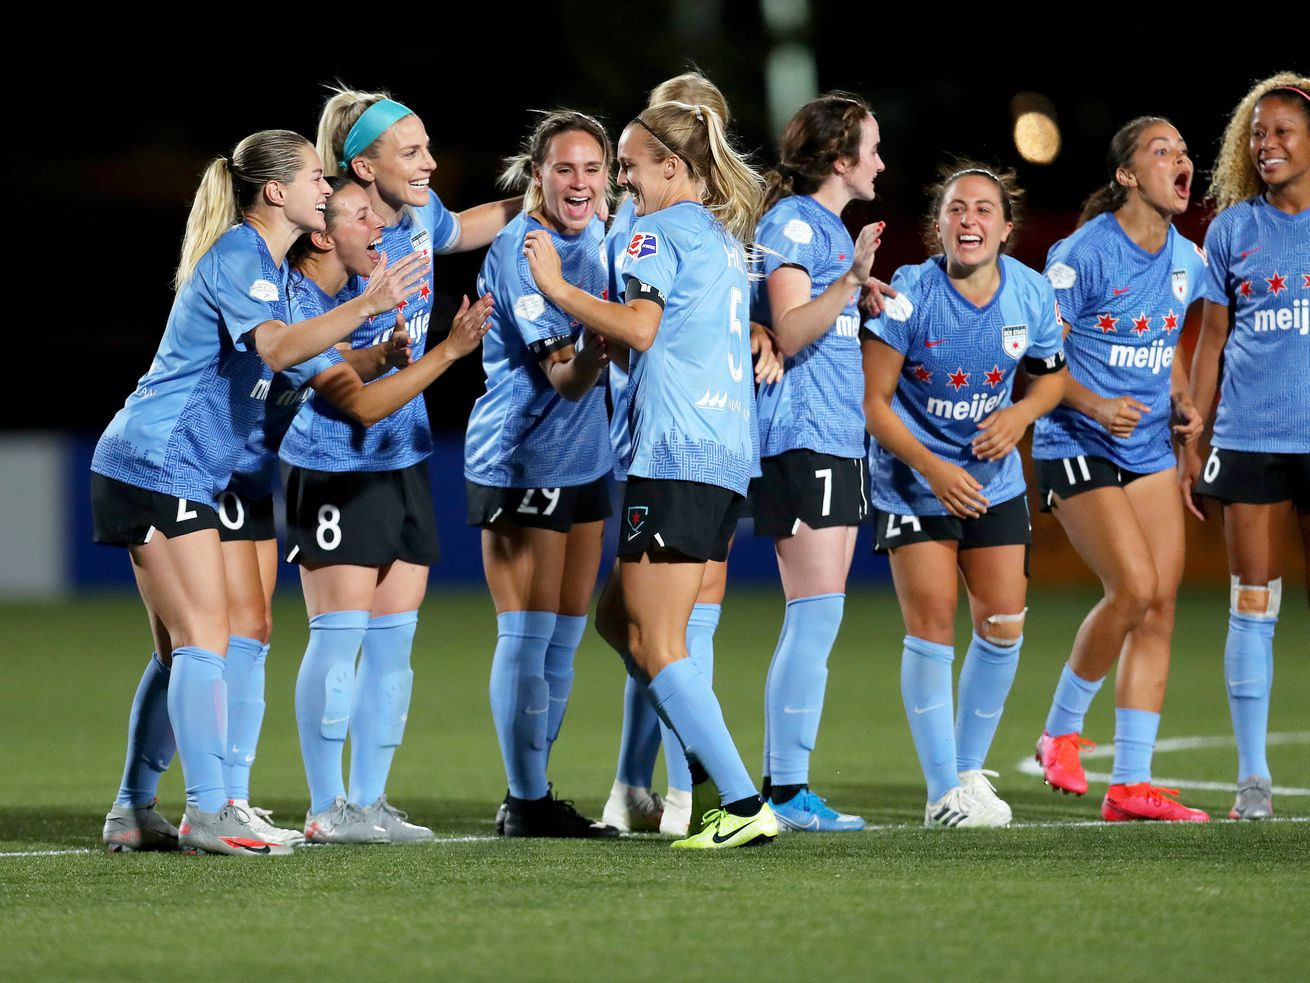 Red Stars have momentum, but they need some more offense